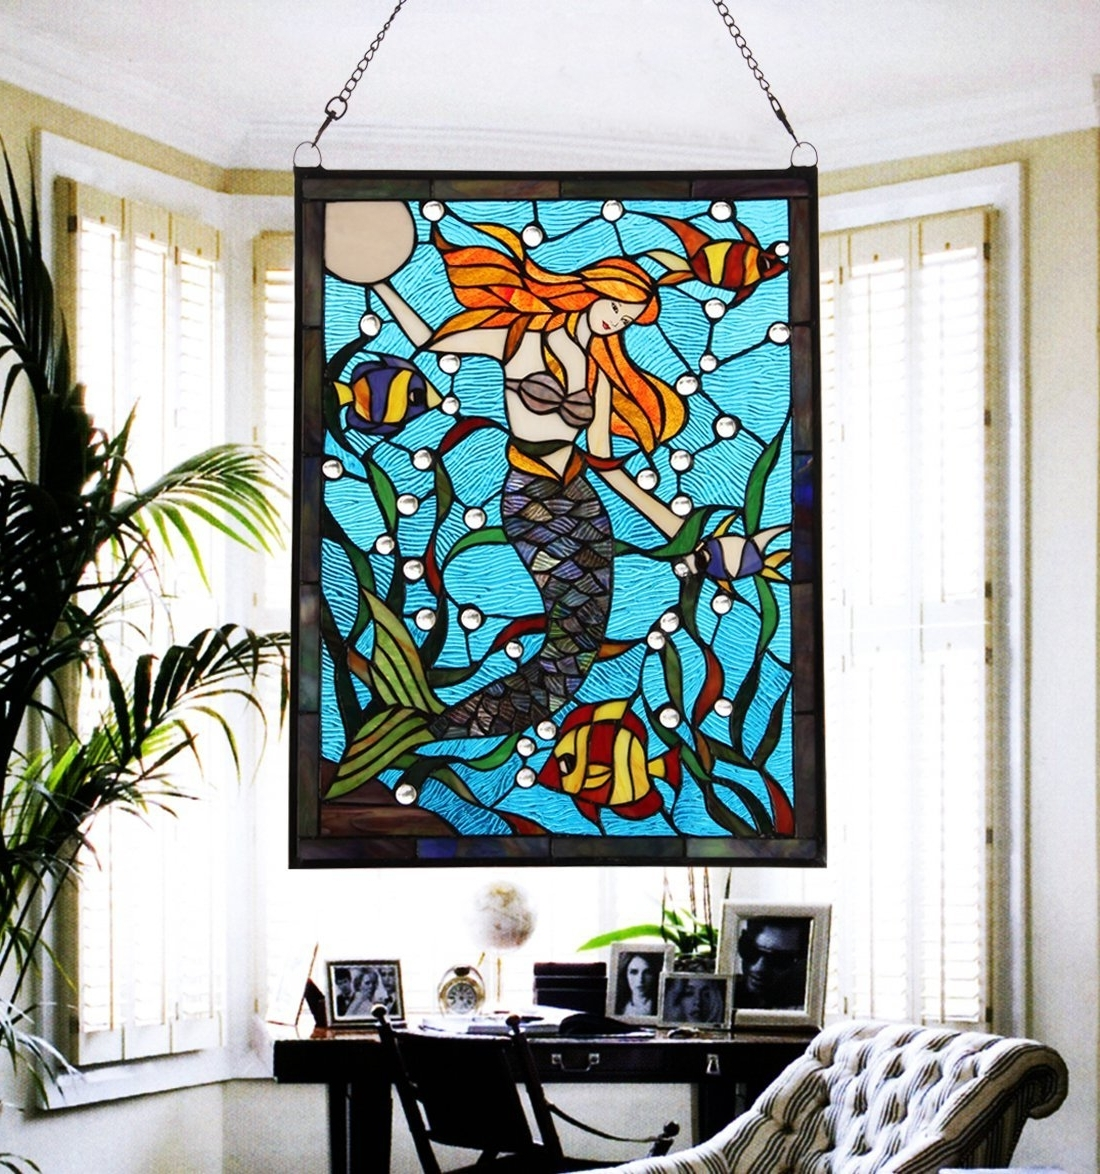 Stained Glass Wall Art Intended For Newest Stained Glass Wall Art – Culturehoop (View 10 of 15)